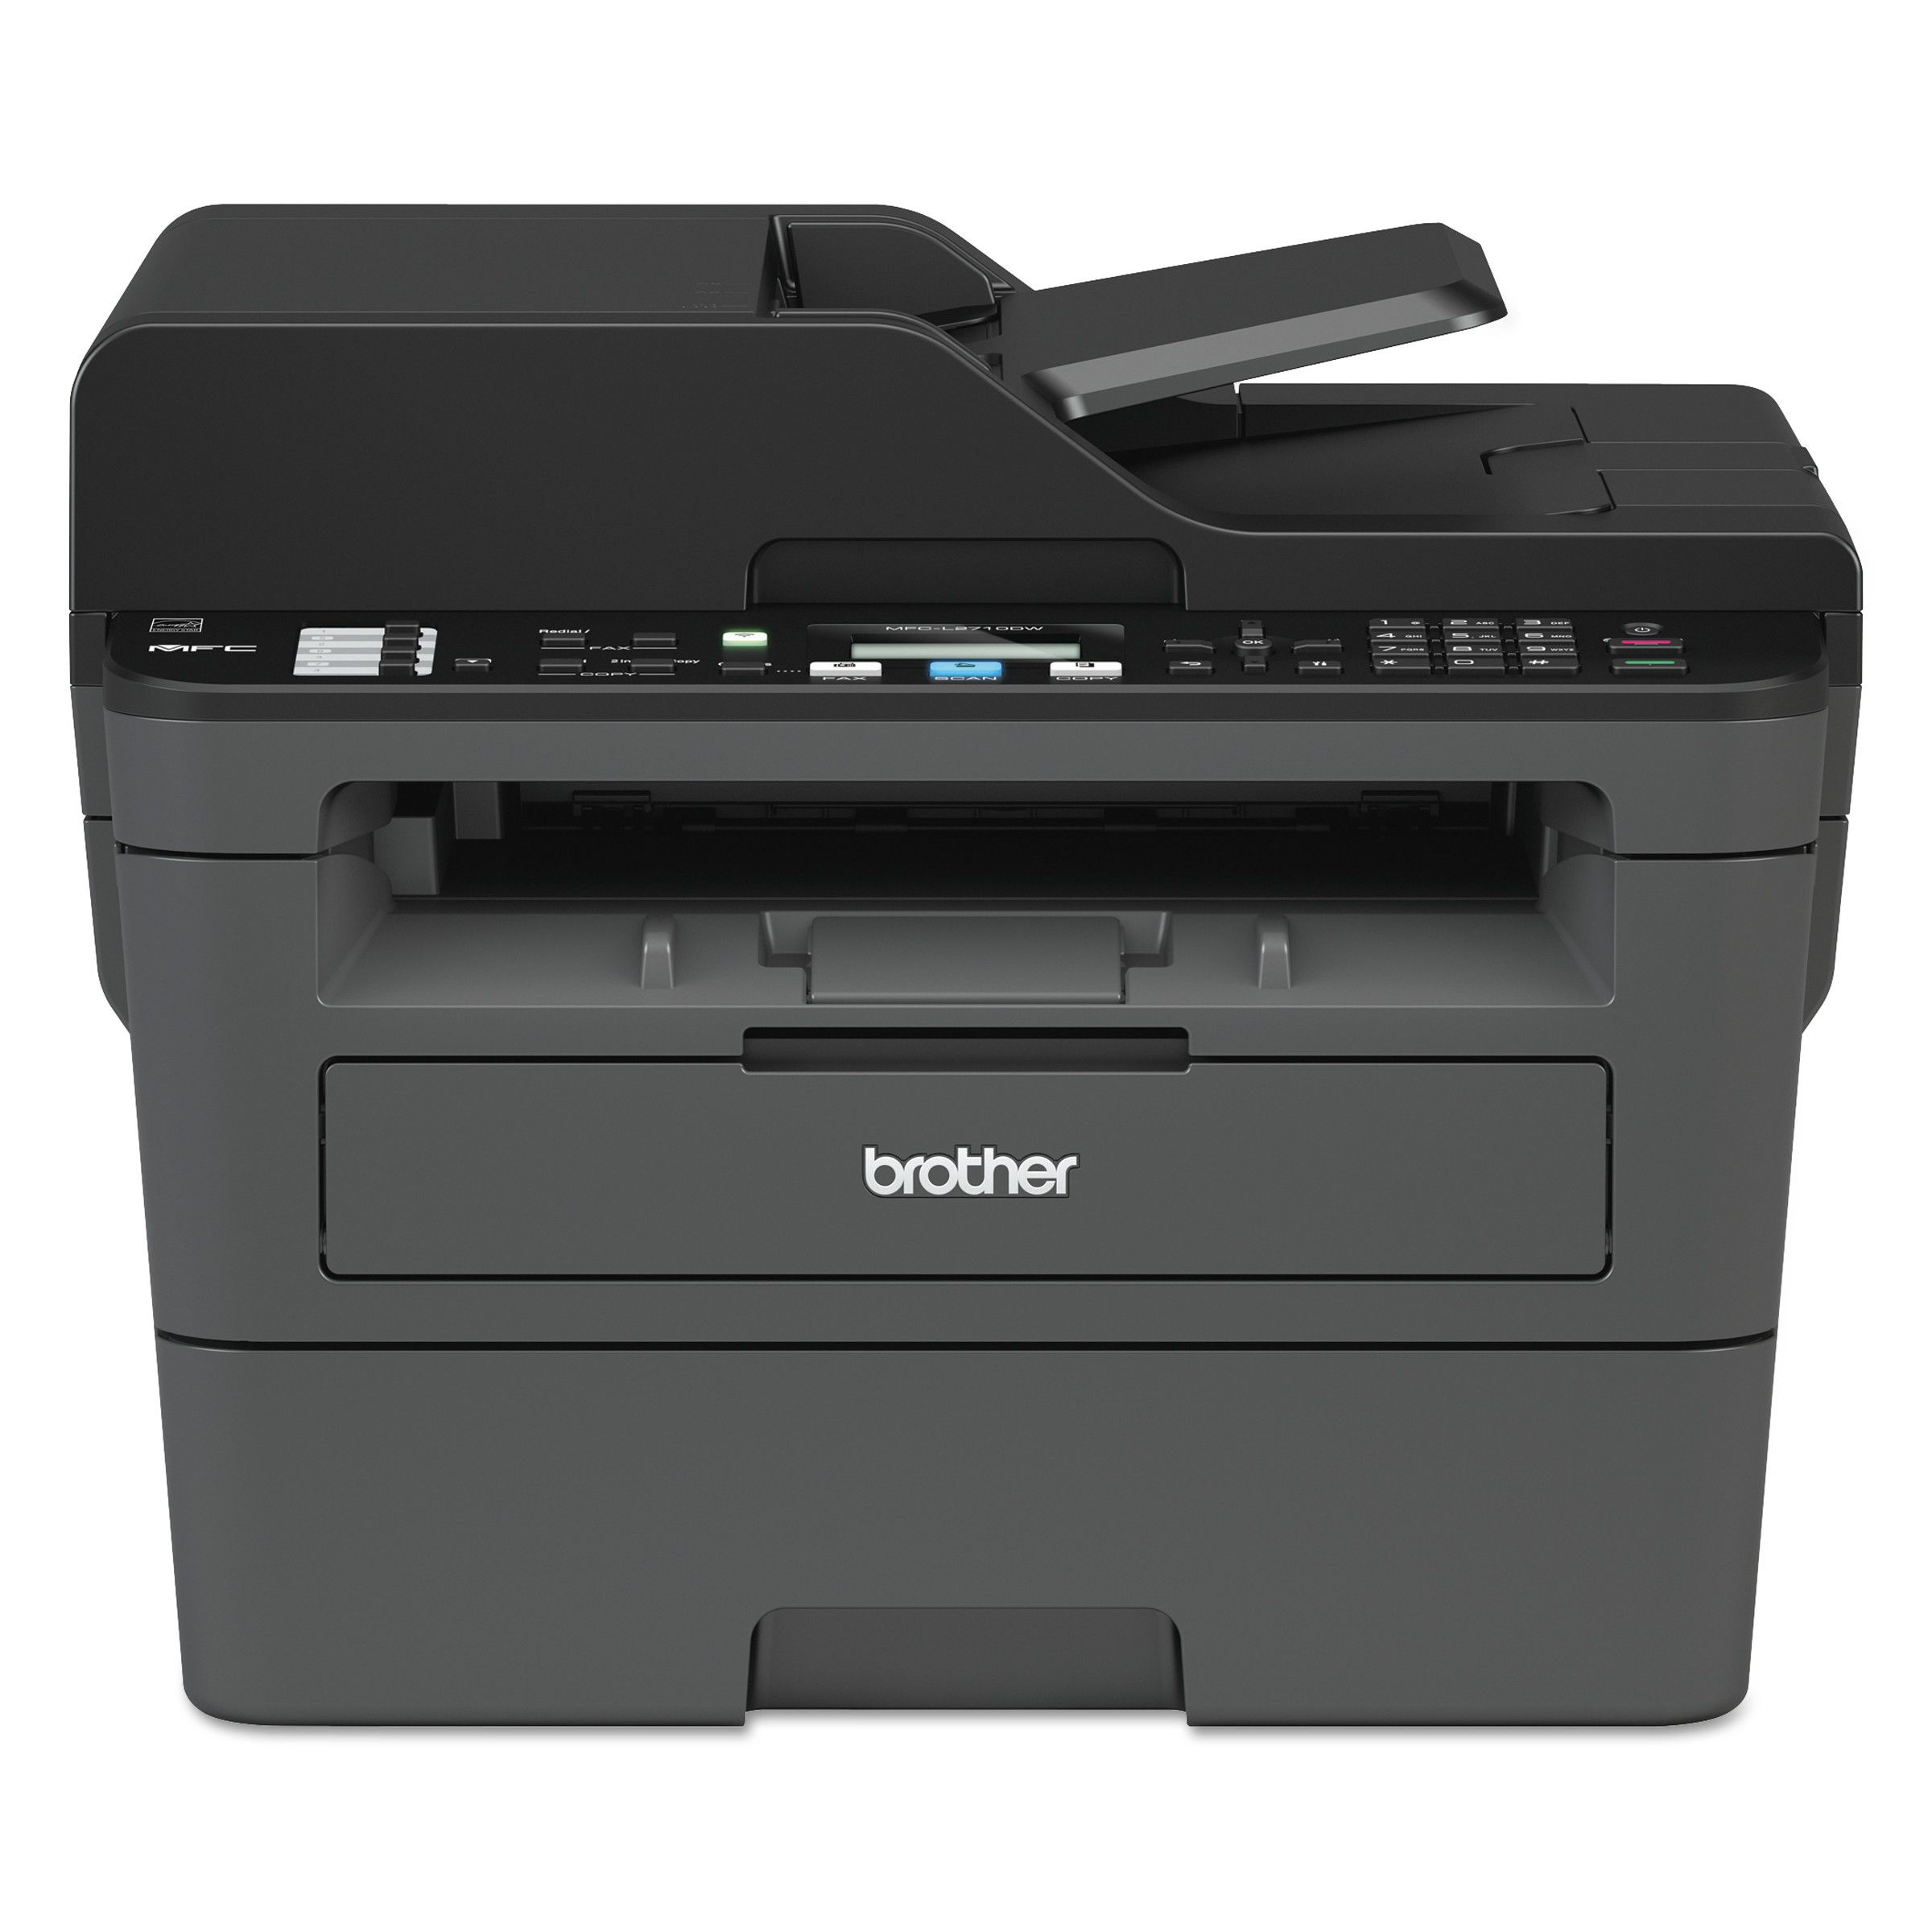 Brother Mfc L2710dw Compact Laser Printer Copy Fax Print Scan